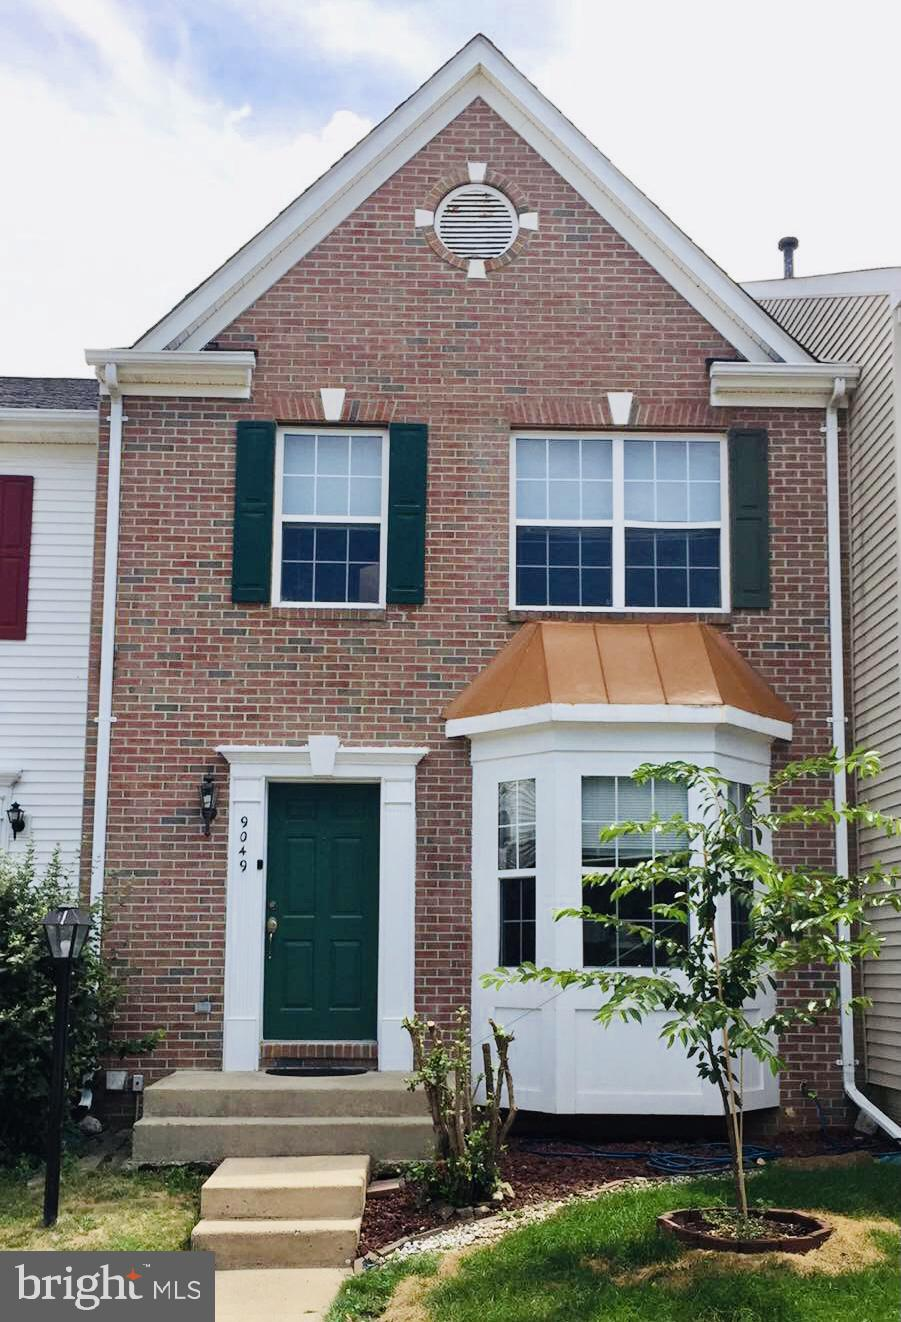 FABULOUS SIZED,BRICK FRONT TH W/OVER 2100+ SQ FT OF ELEGANT LIVING! GREAT OPEN FLOORPLAN W/ SPACIOUS